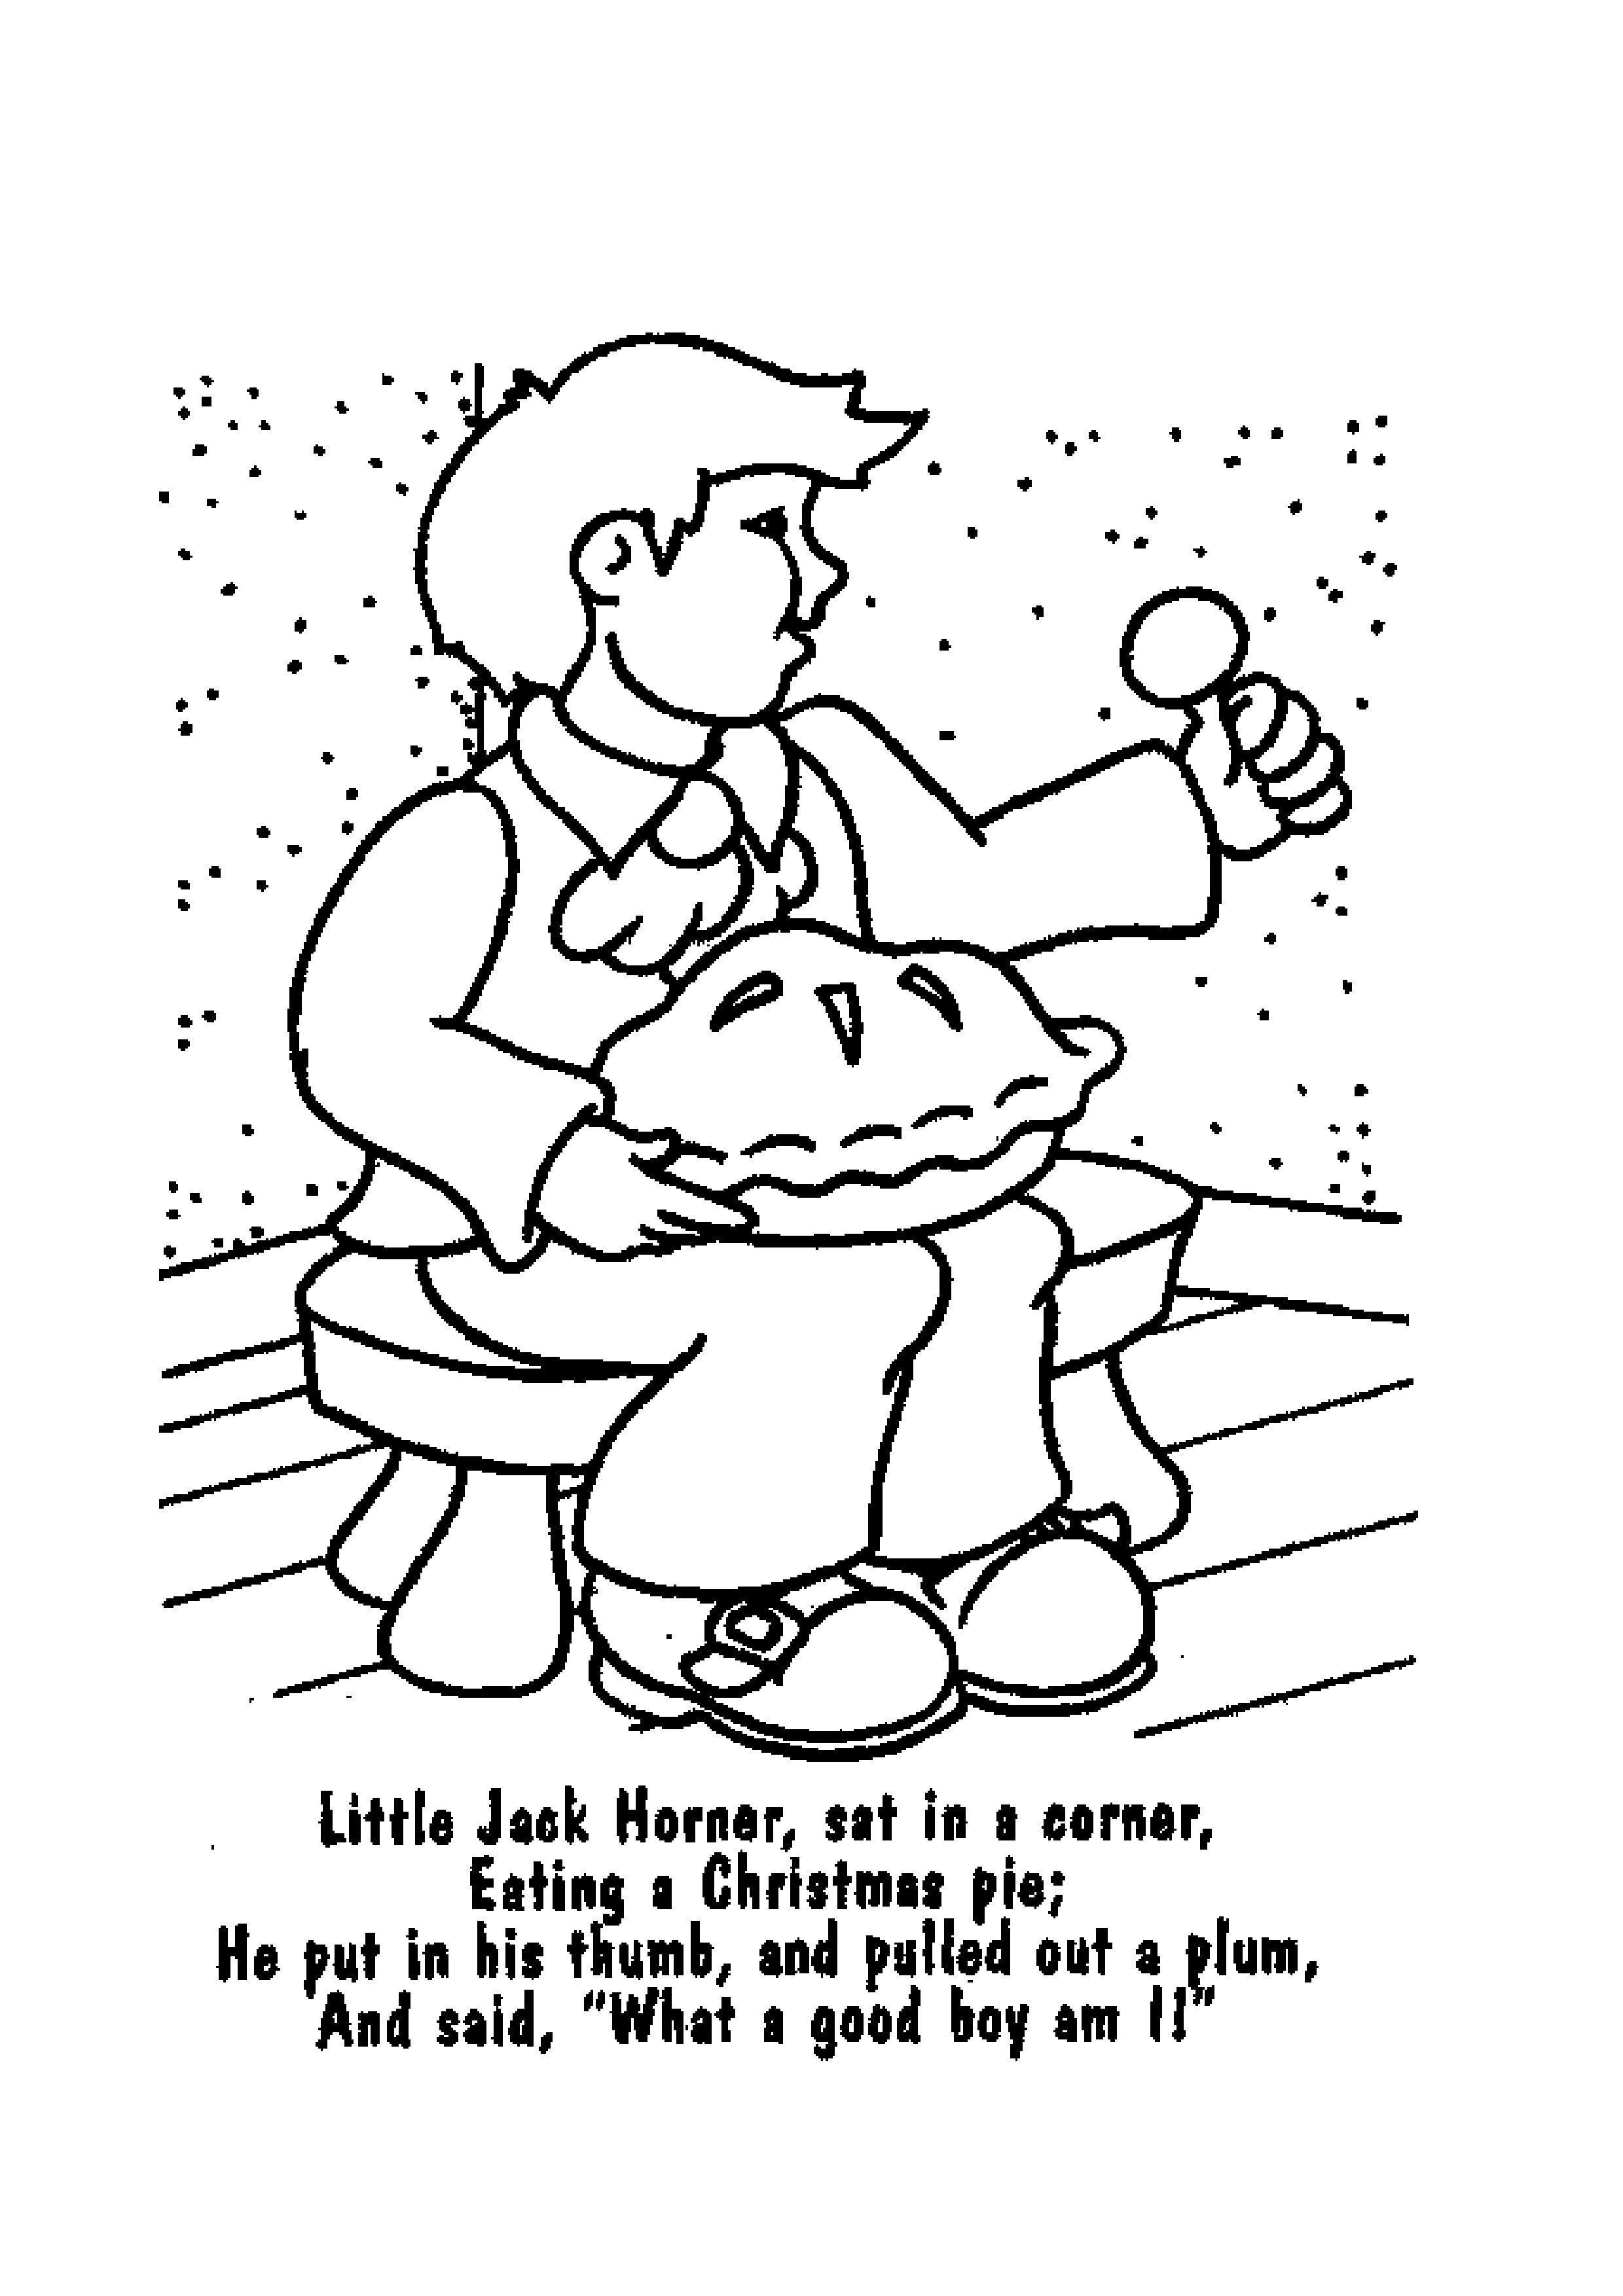 Nursery Rhymes Coloring Pages Printable Free Download Sheets For Kids To Draw And Color Activi Preschool Coloring Pages Nursery Rhymes Nursery Rhymes Preschool